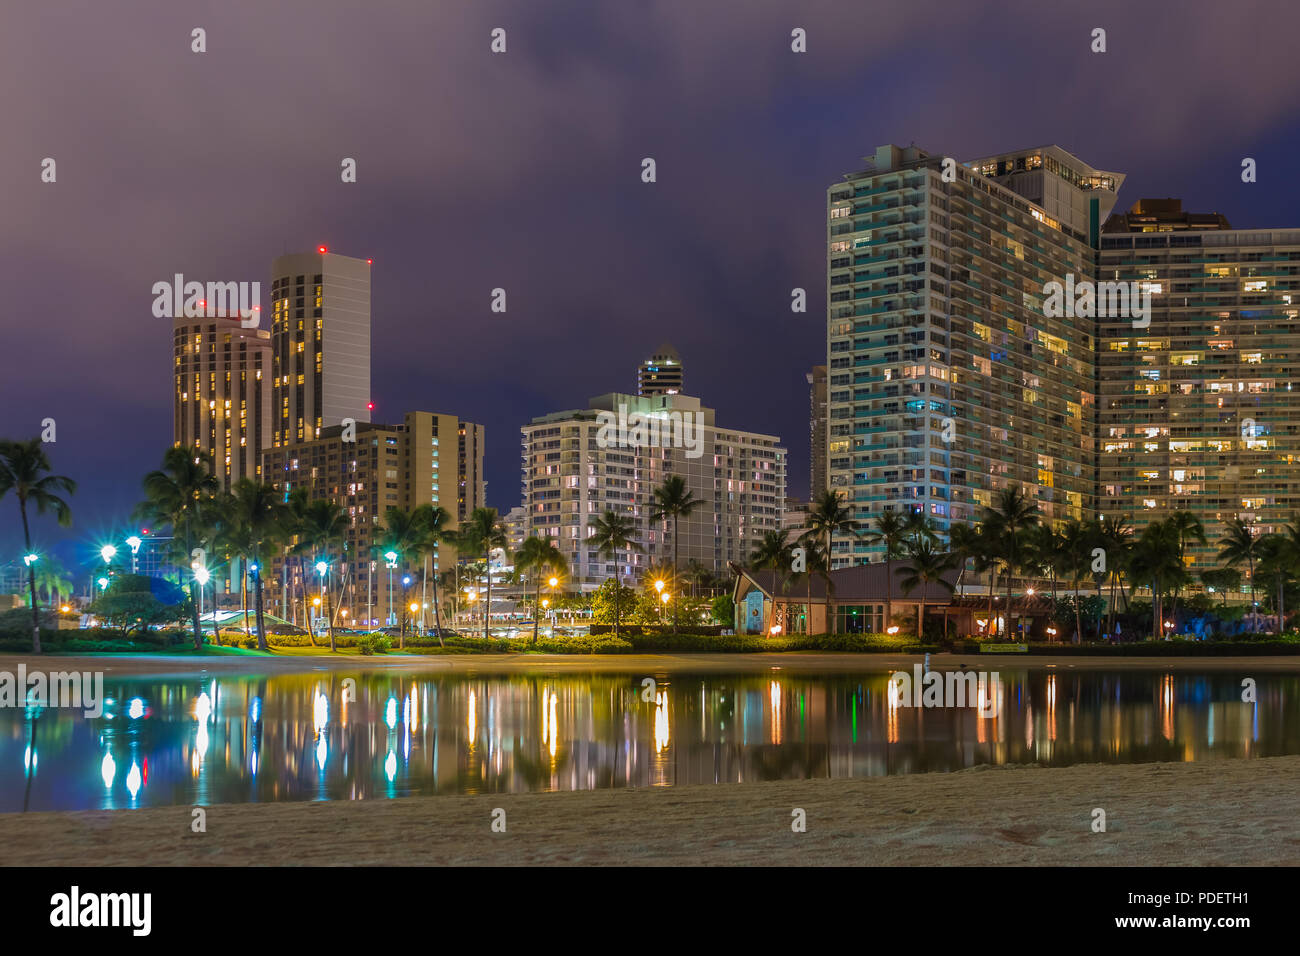 Vista nocturna de la playa de Waikiki y Diamond Head en Honolulu en la noche en Hawaii, EE.UU. Imagen De Stock